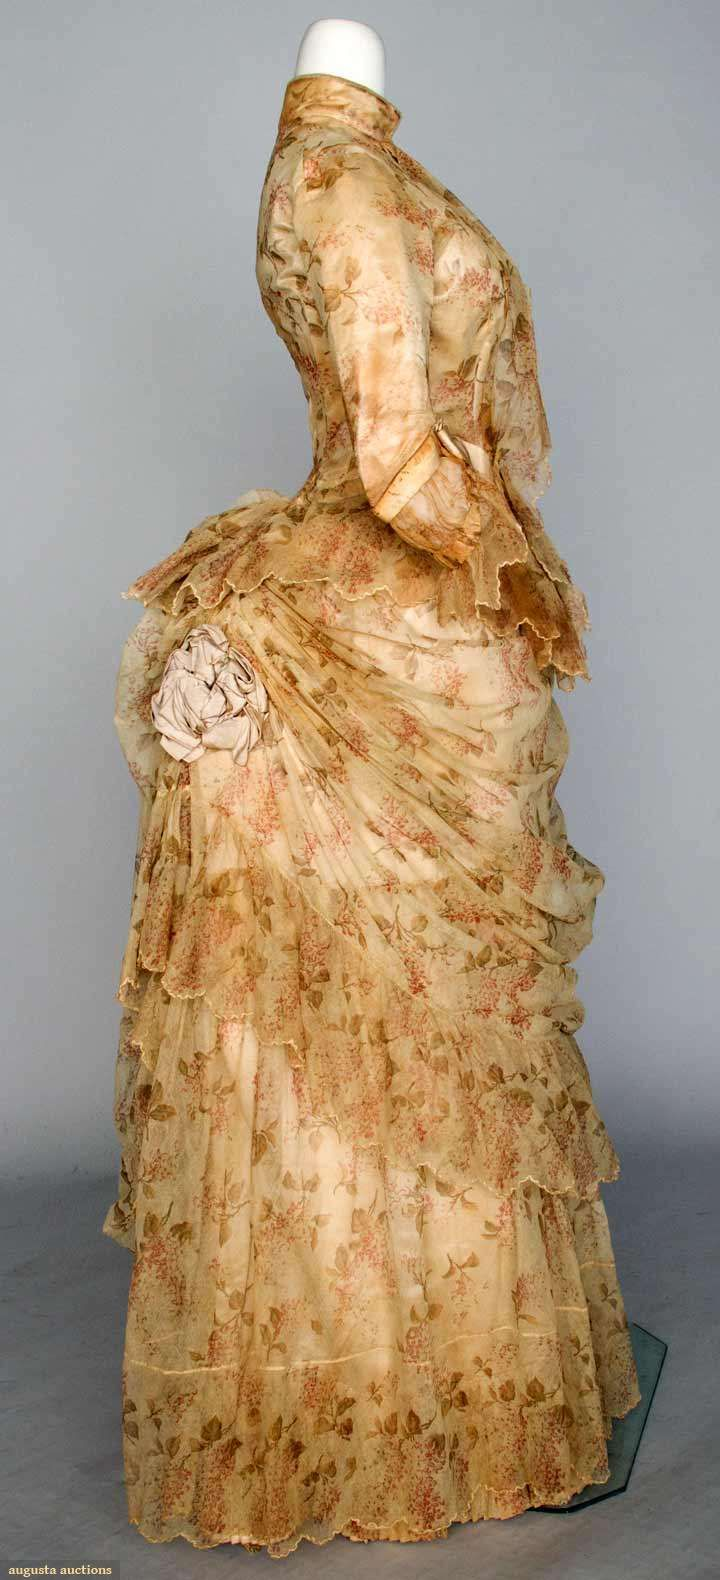 Augusta Auctions: printed tulle bustle dress, nyc, 2-piece cream cotton tulle printed w/ small sprays of rose colored flowers & green leaves, a-symmetrically draped skirt w/ ribbon rosettes, petersham label 1886